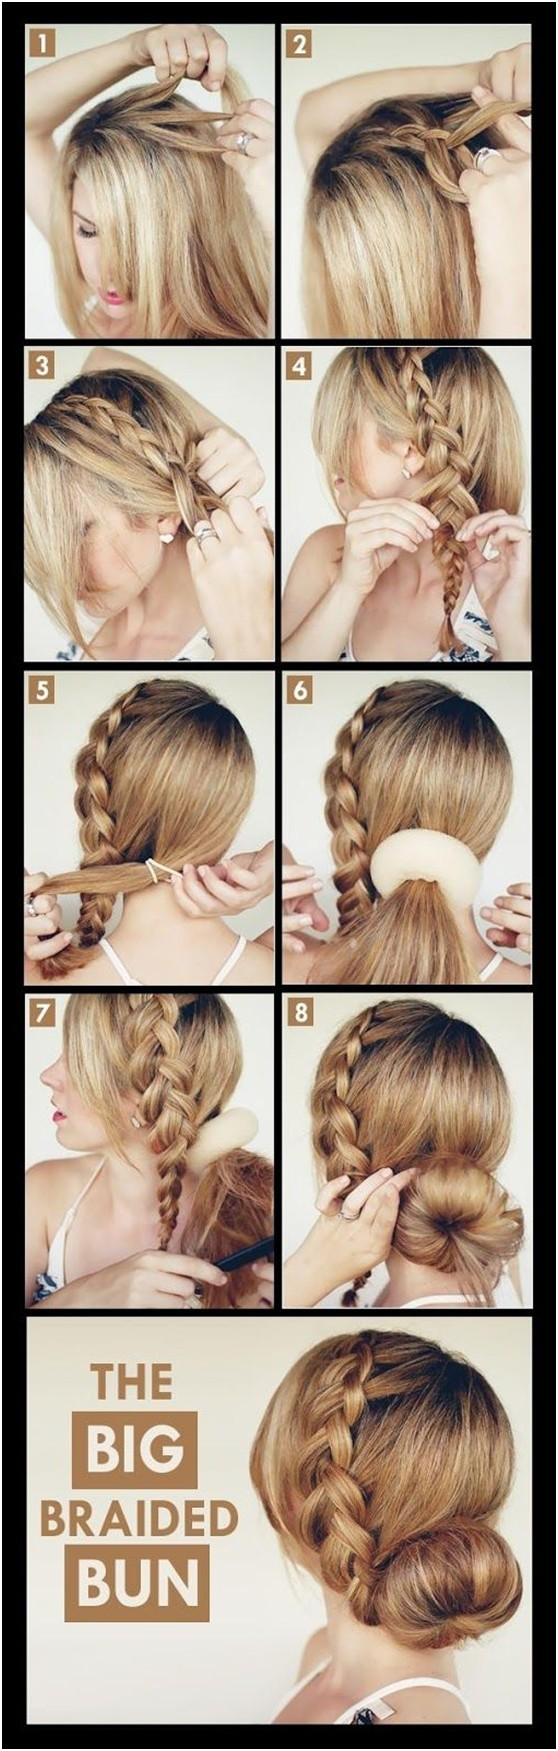 Admirable 15 Braided Updo Hairstyles Tutorials Pretty Designs Hairstyle Inspiration Daily Dogsangcom